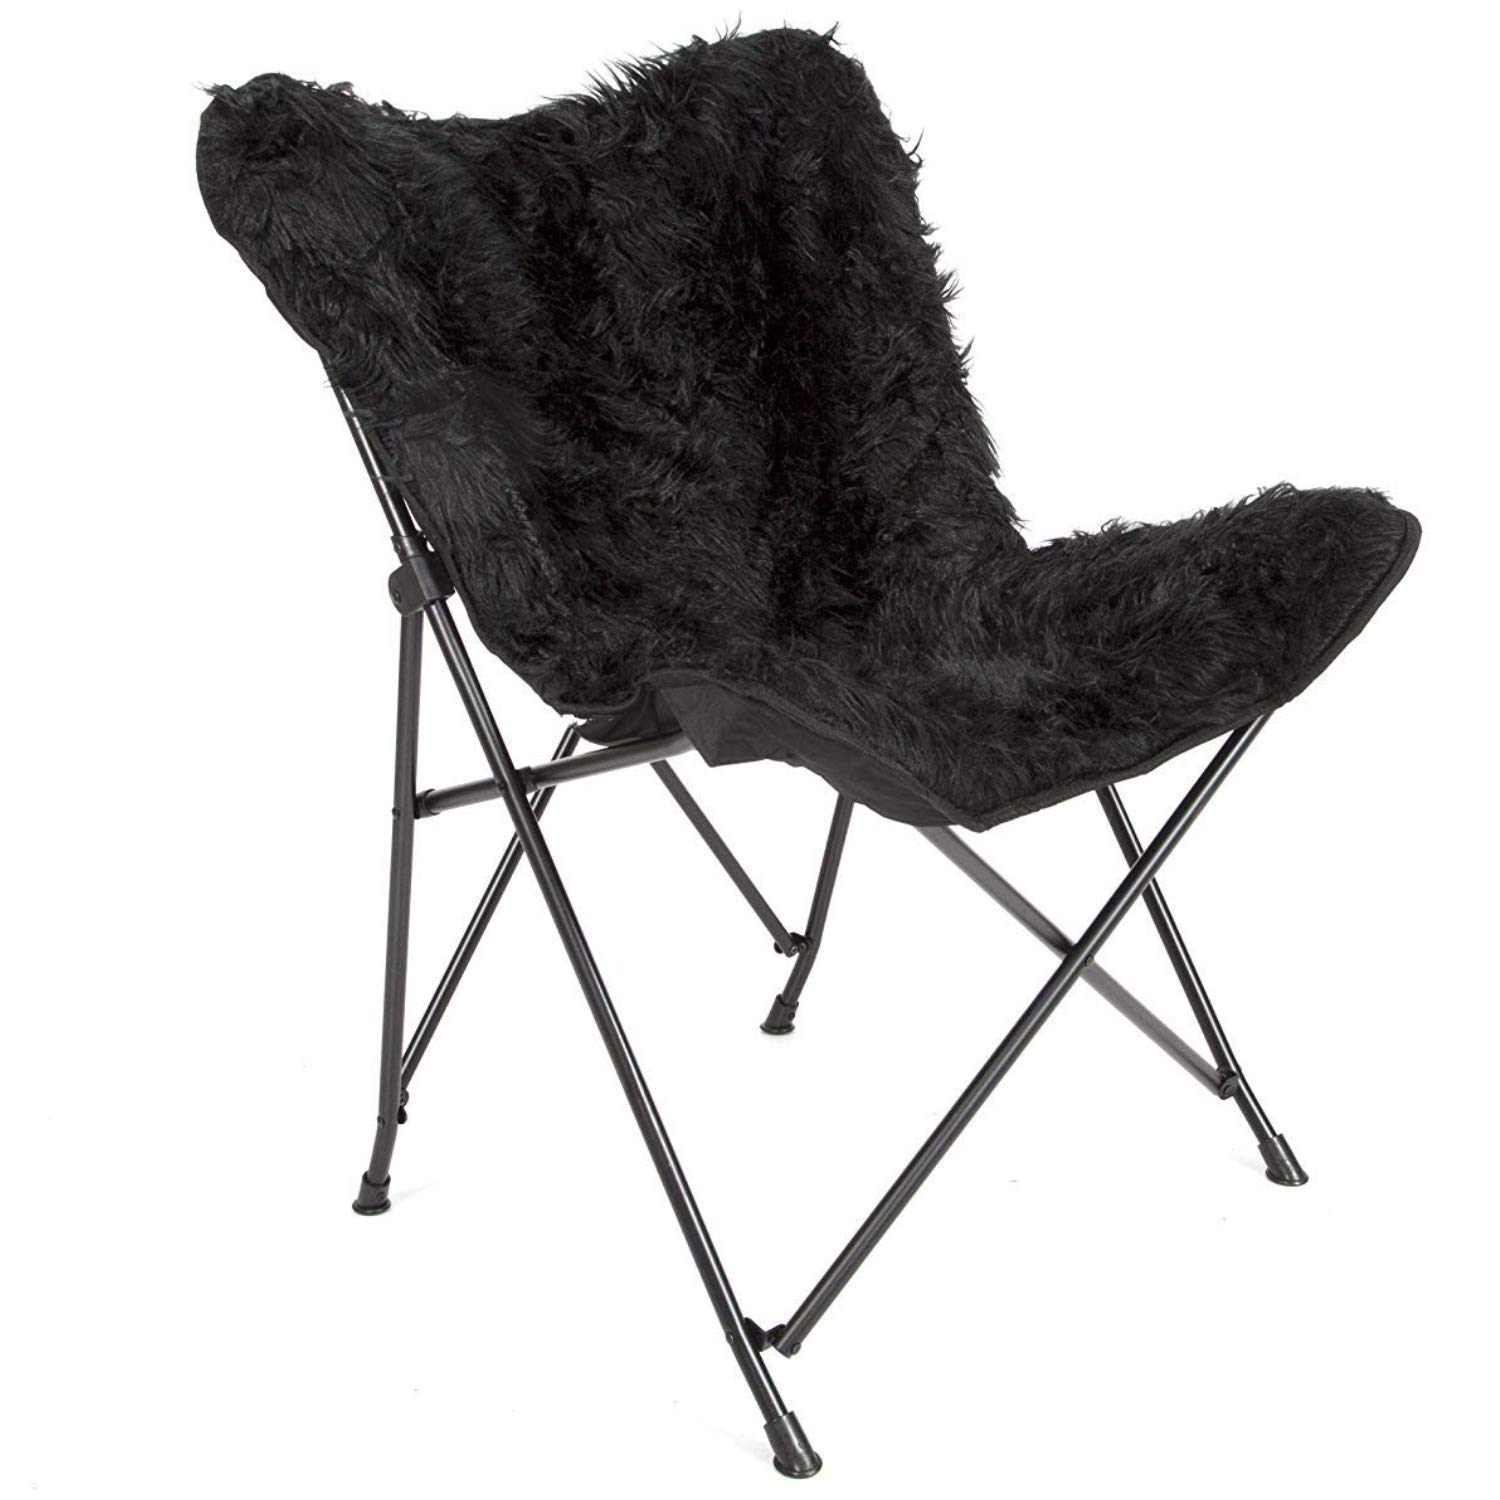 Enjoyable Mac Sports Black Butterfly Papasan Fur Chair Foldable Collapsible Fluffy And Fuzzy Removable Faux Black Fur Cover Accent Chair For Women Girls Gamerscity Chair Design For Home Gamerscityorg